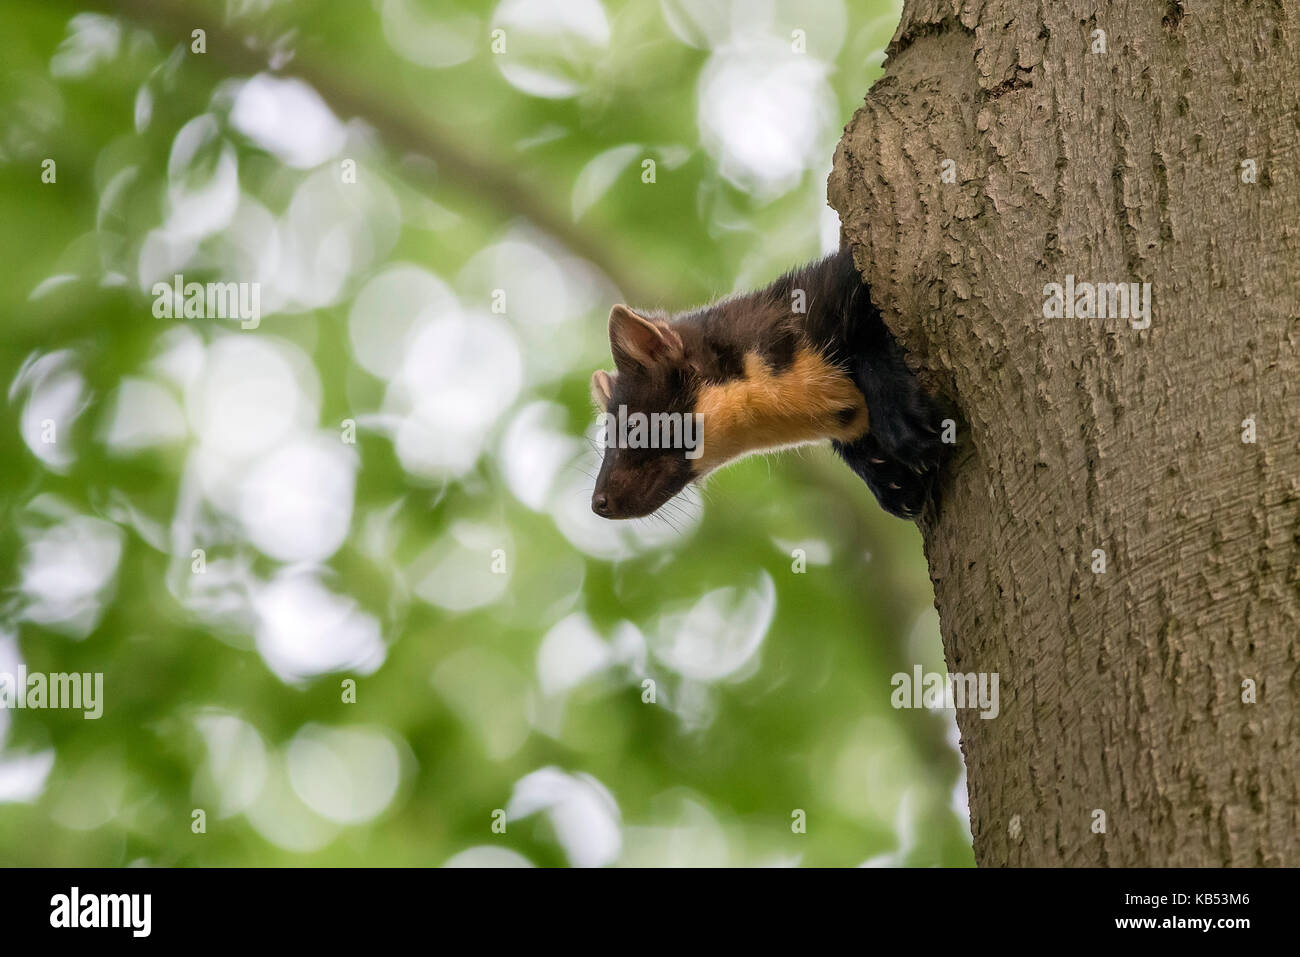 Pine Marten (Martes martes) adult female looking from a beech tree nest hole, The Netherlands, Utrecht, Utrechtse - Stock Image